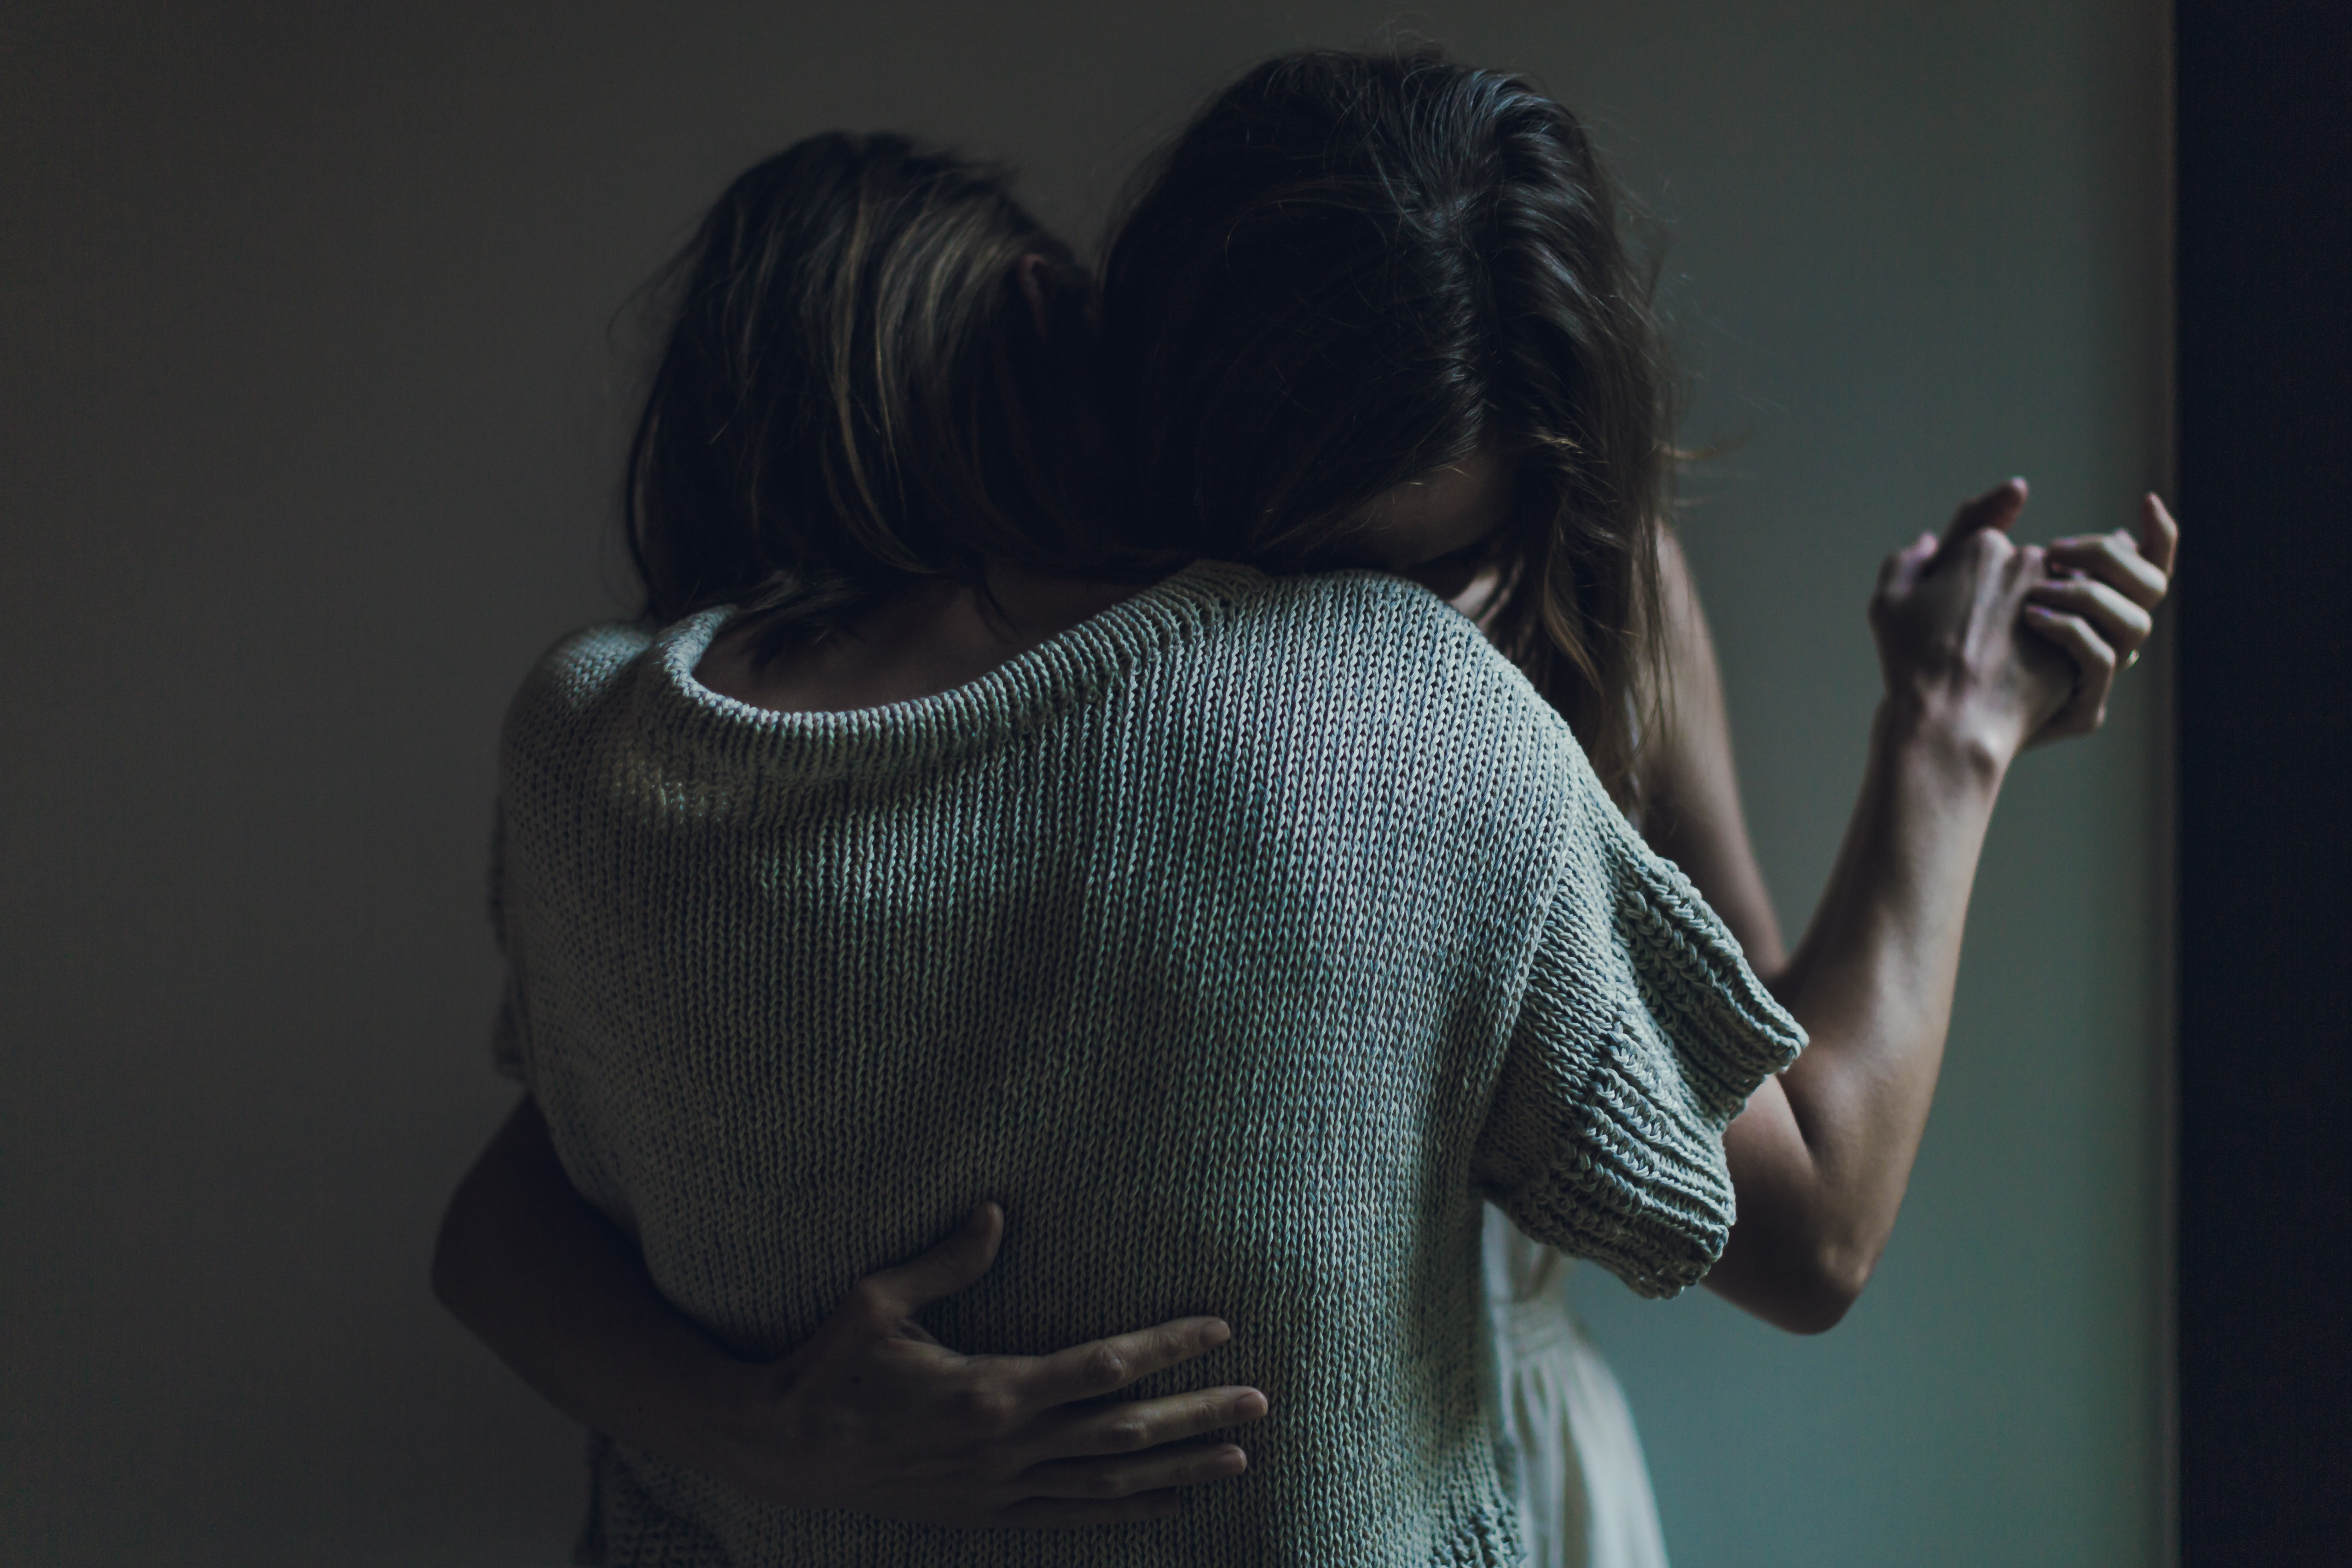 Two people holding each other close, dancing slowly in darkened room